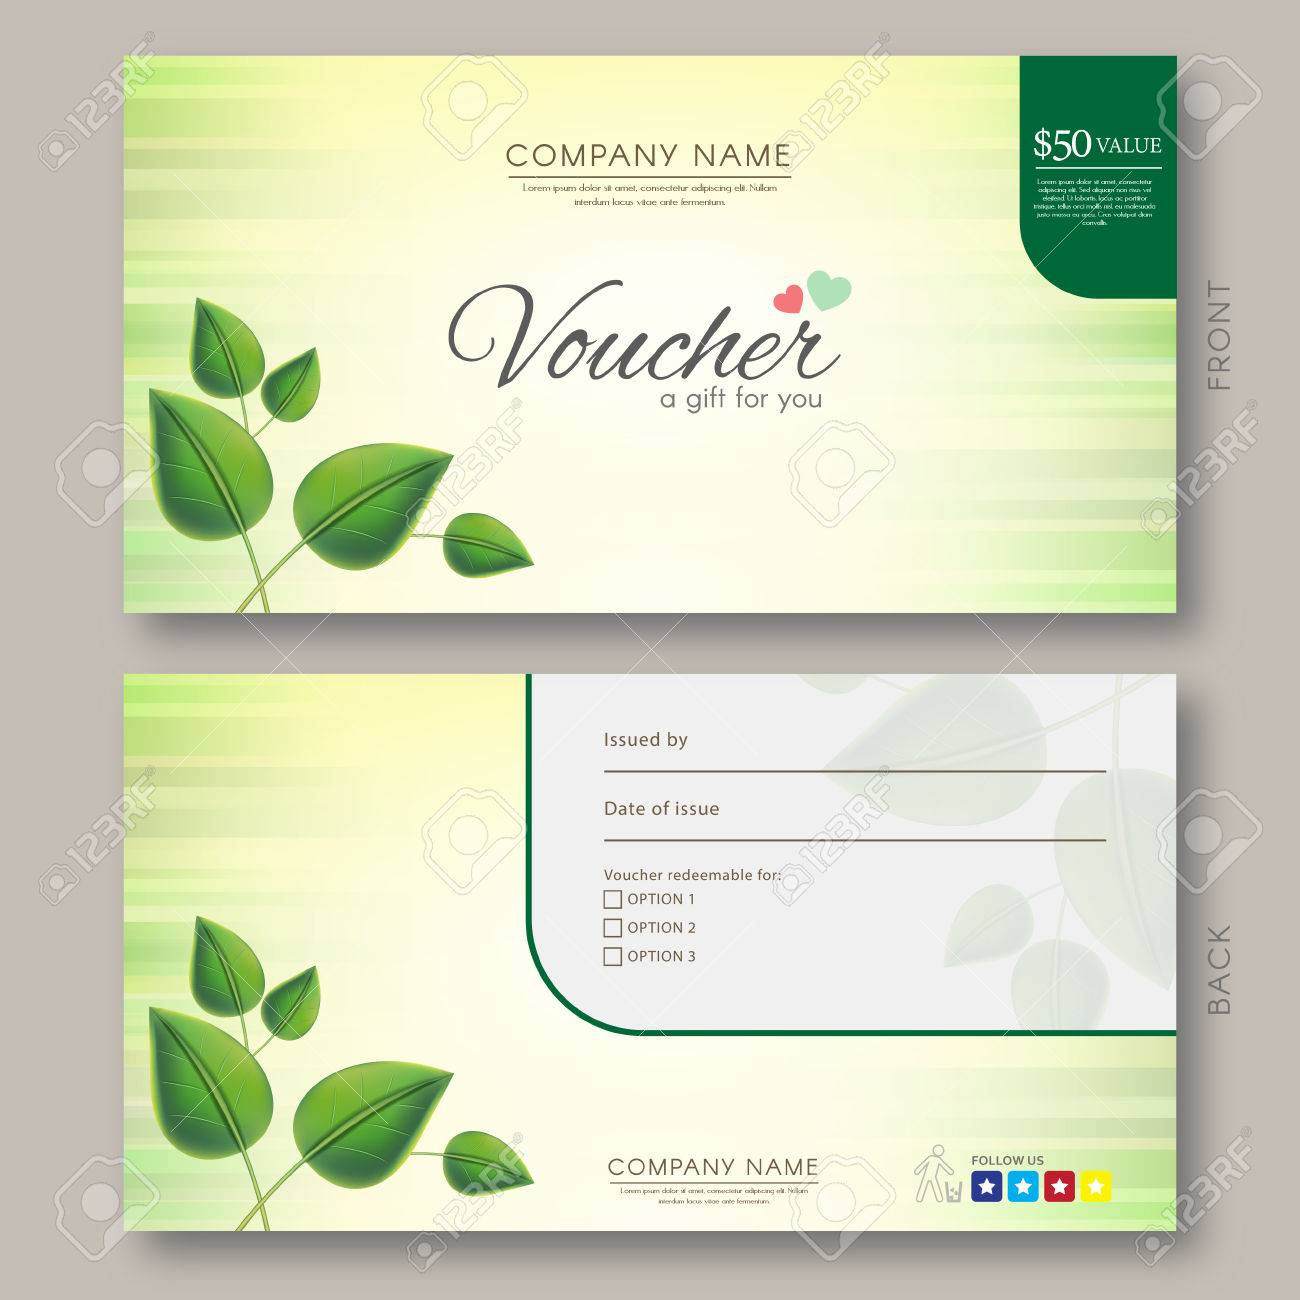 Elegant Gift Voucher Template With Green Natural Floral Theme ...